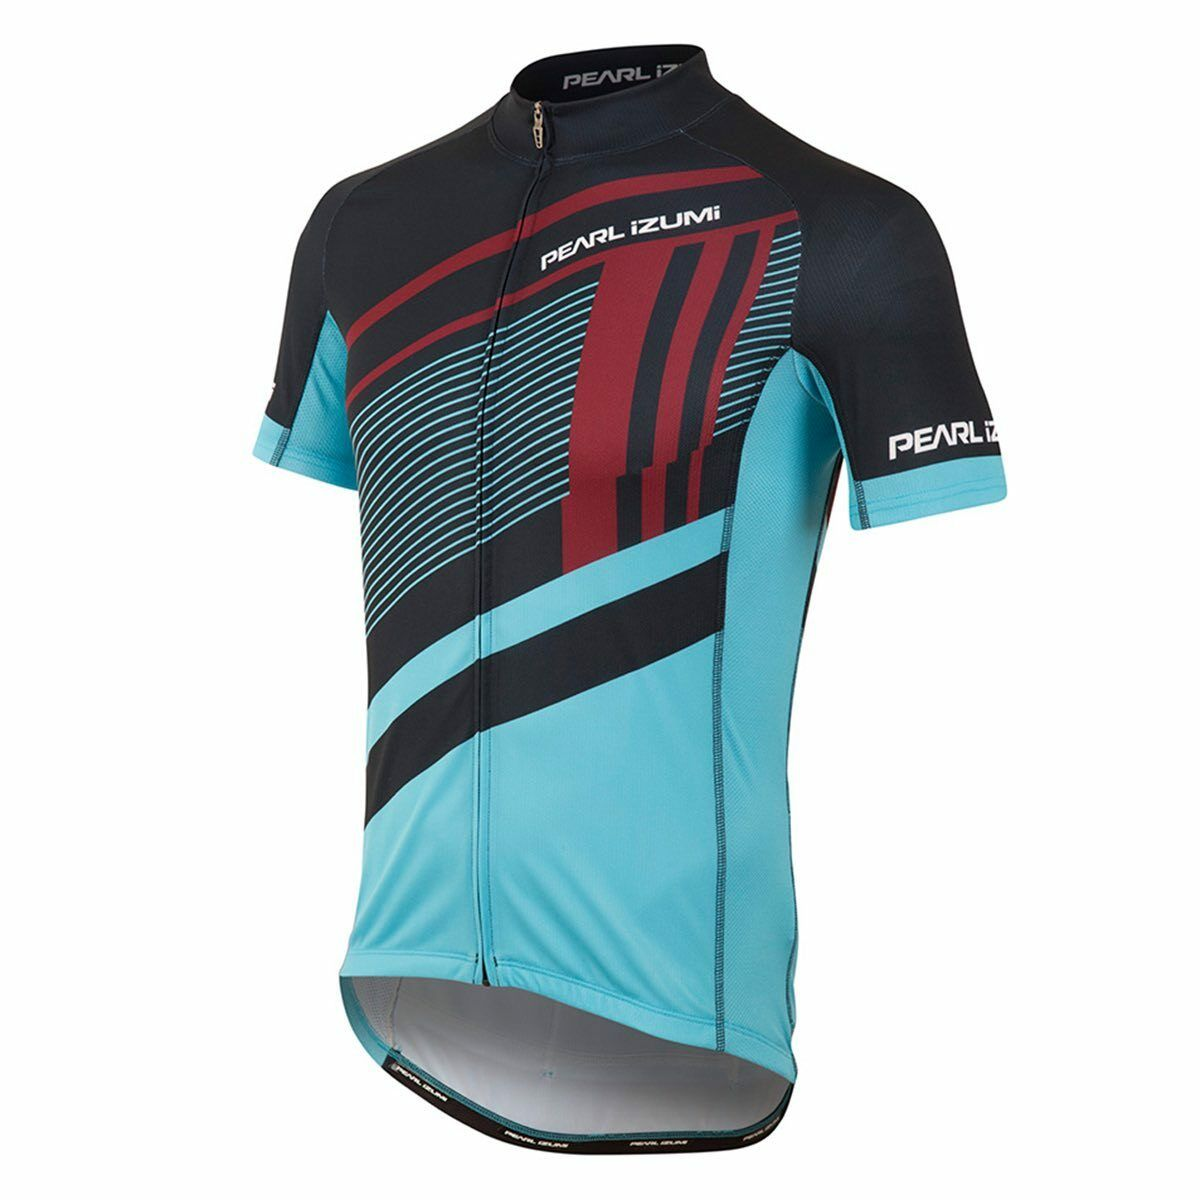 Pearl Izumi Elite Escape LTD Jersey Cycling Top Men's Short Sleeve bluee 11121617